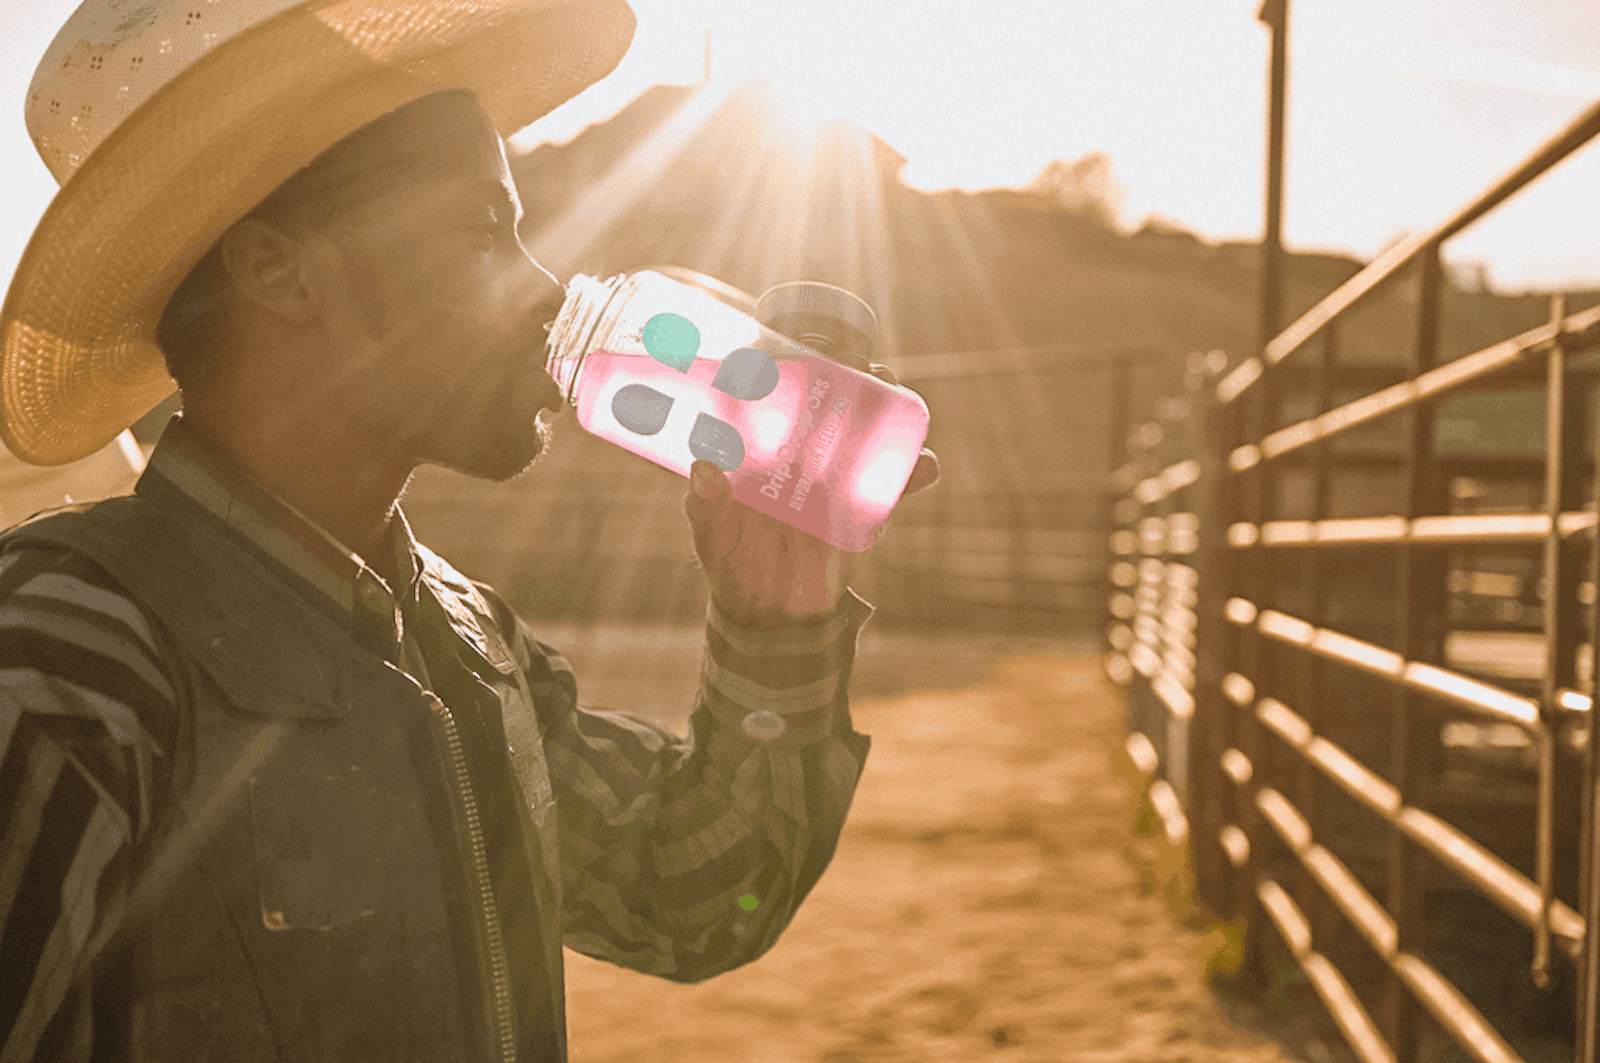 What drinks have electrolytes: man under the heat of the sun, drinking from a DripDrop ORS tumbler